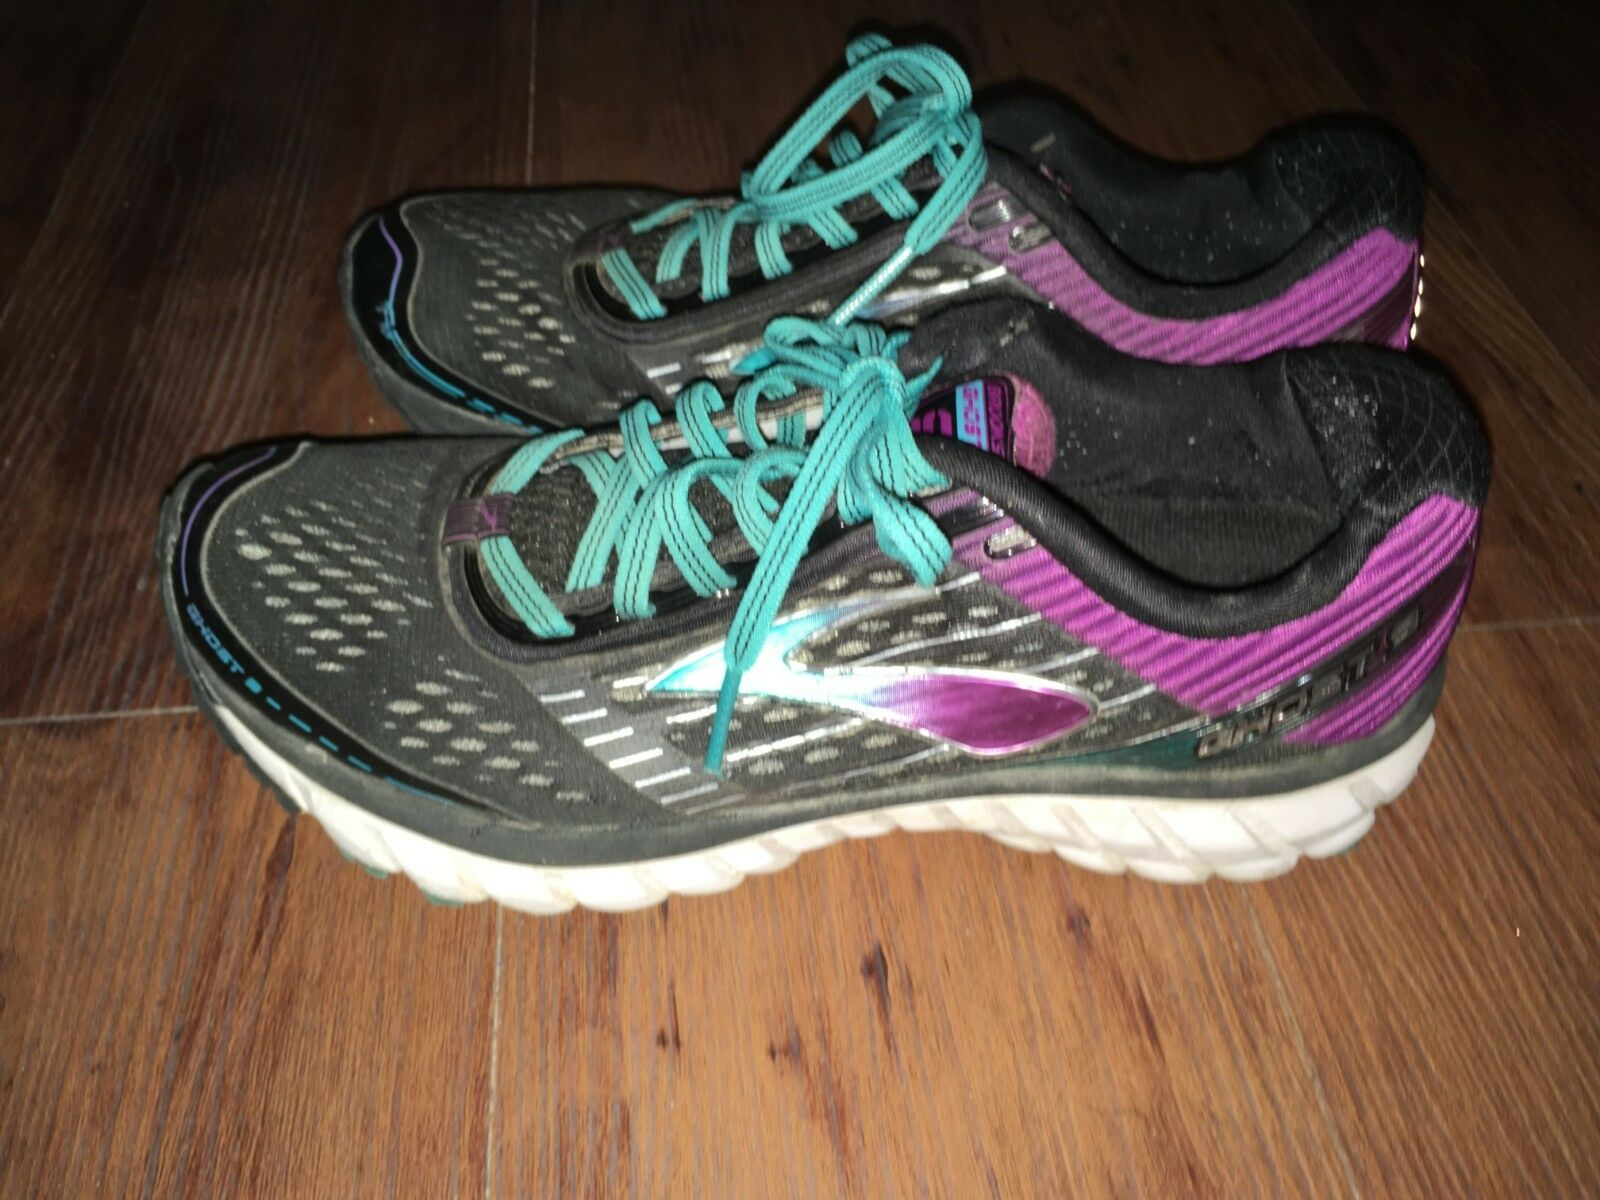 Brooks Ghost 9 Running Shoes Black/Purple/Teal Women's US Size 7.5